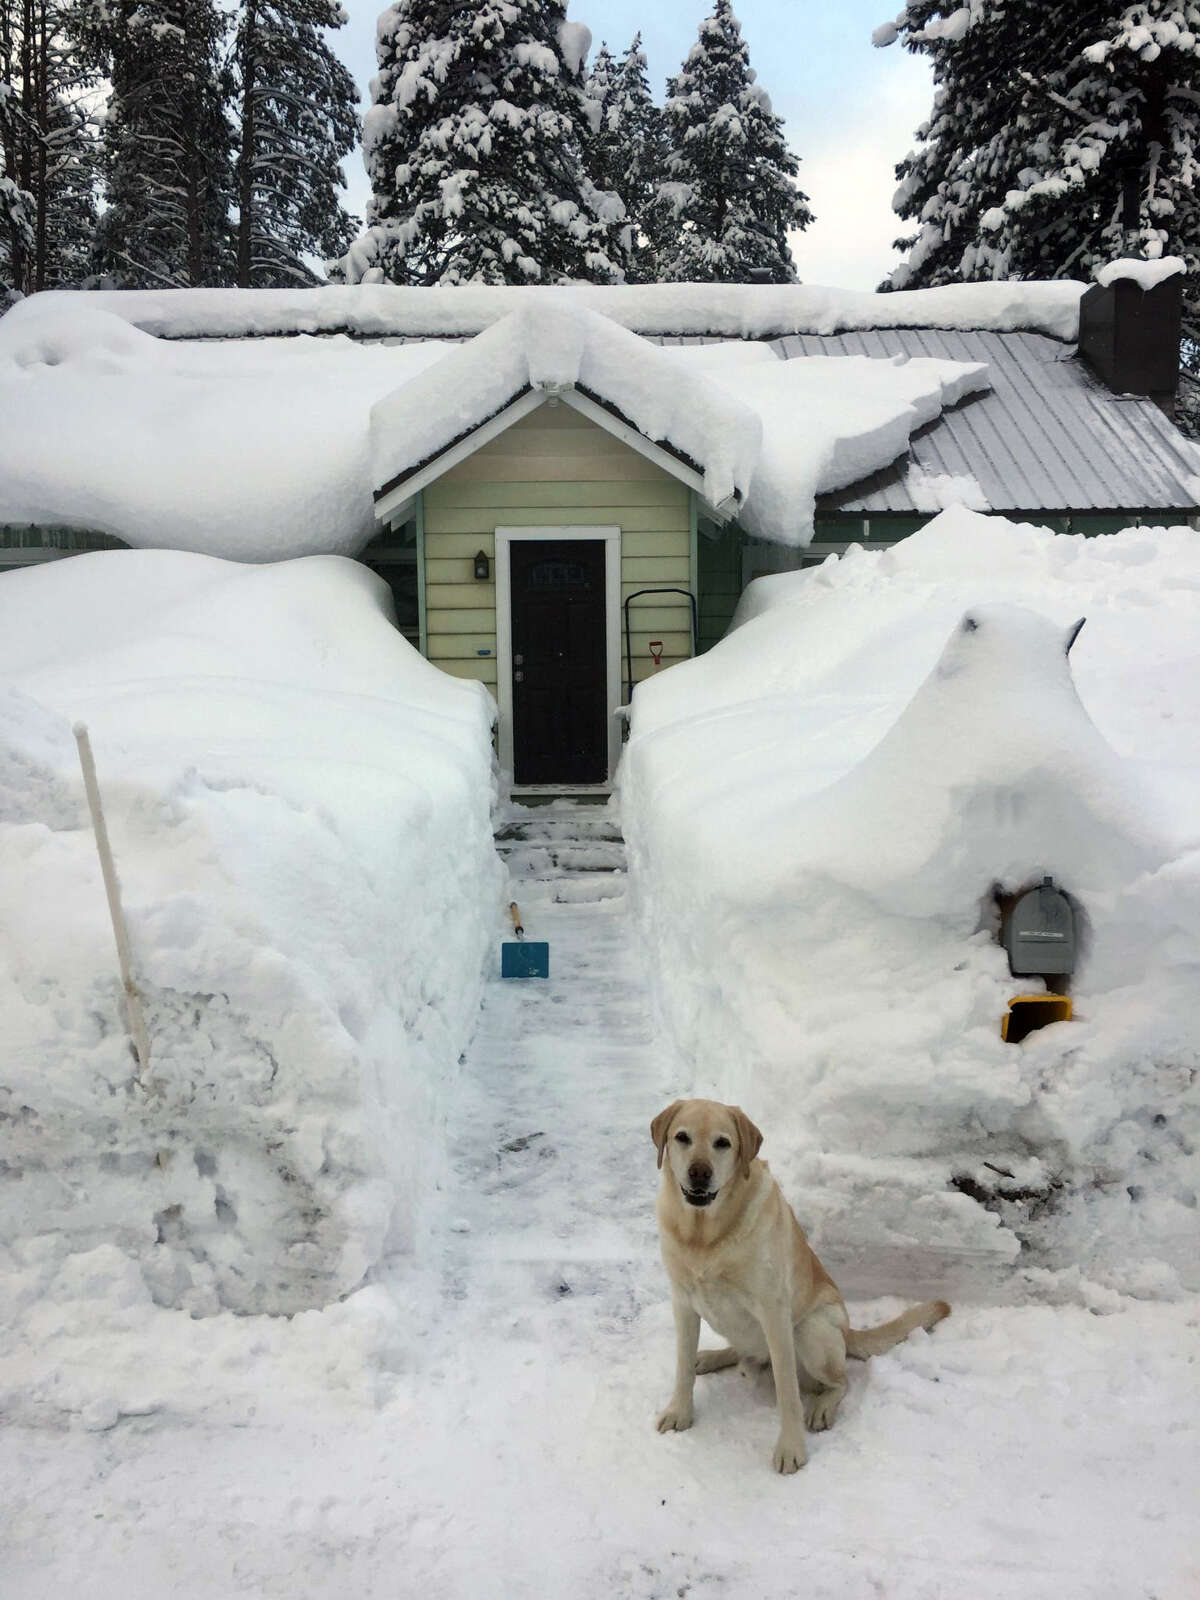 Snow piled high at a house in the high country of Truckee, Calif., on Feb. 6, 2019.